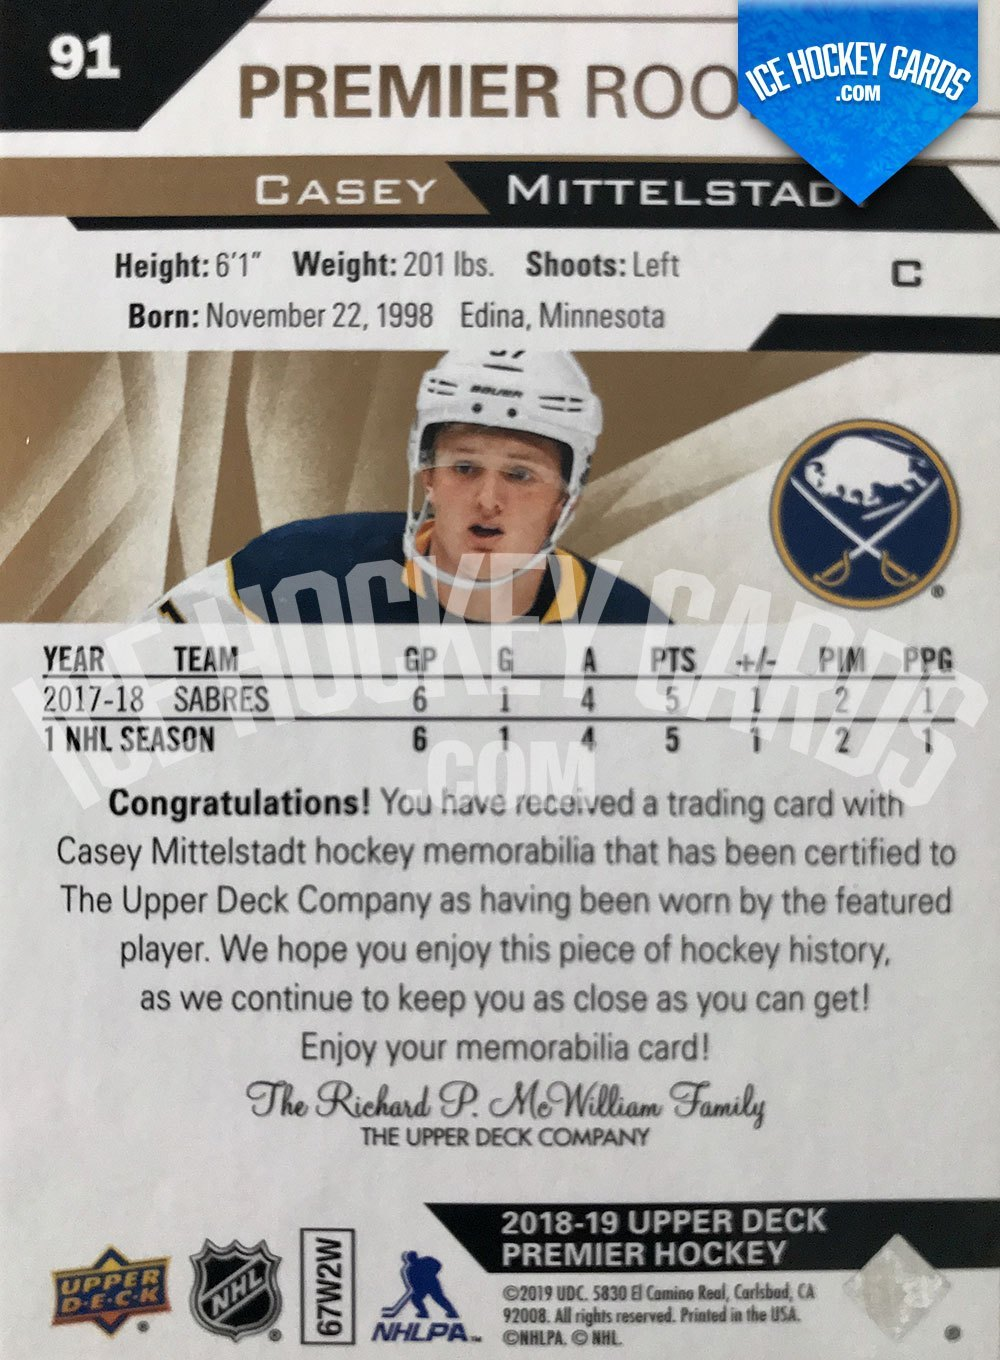 Upper Deck - Premier 2019-20 - Casey Mittelstadt Premier Rookie Fight Strap Patch RC # to 15 back